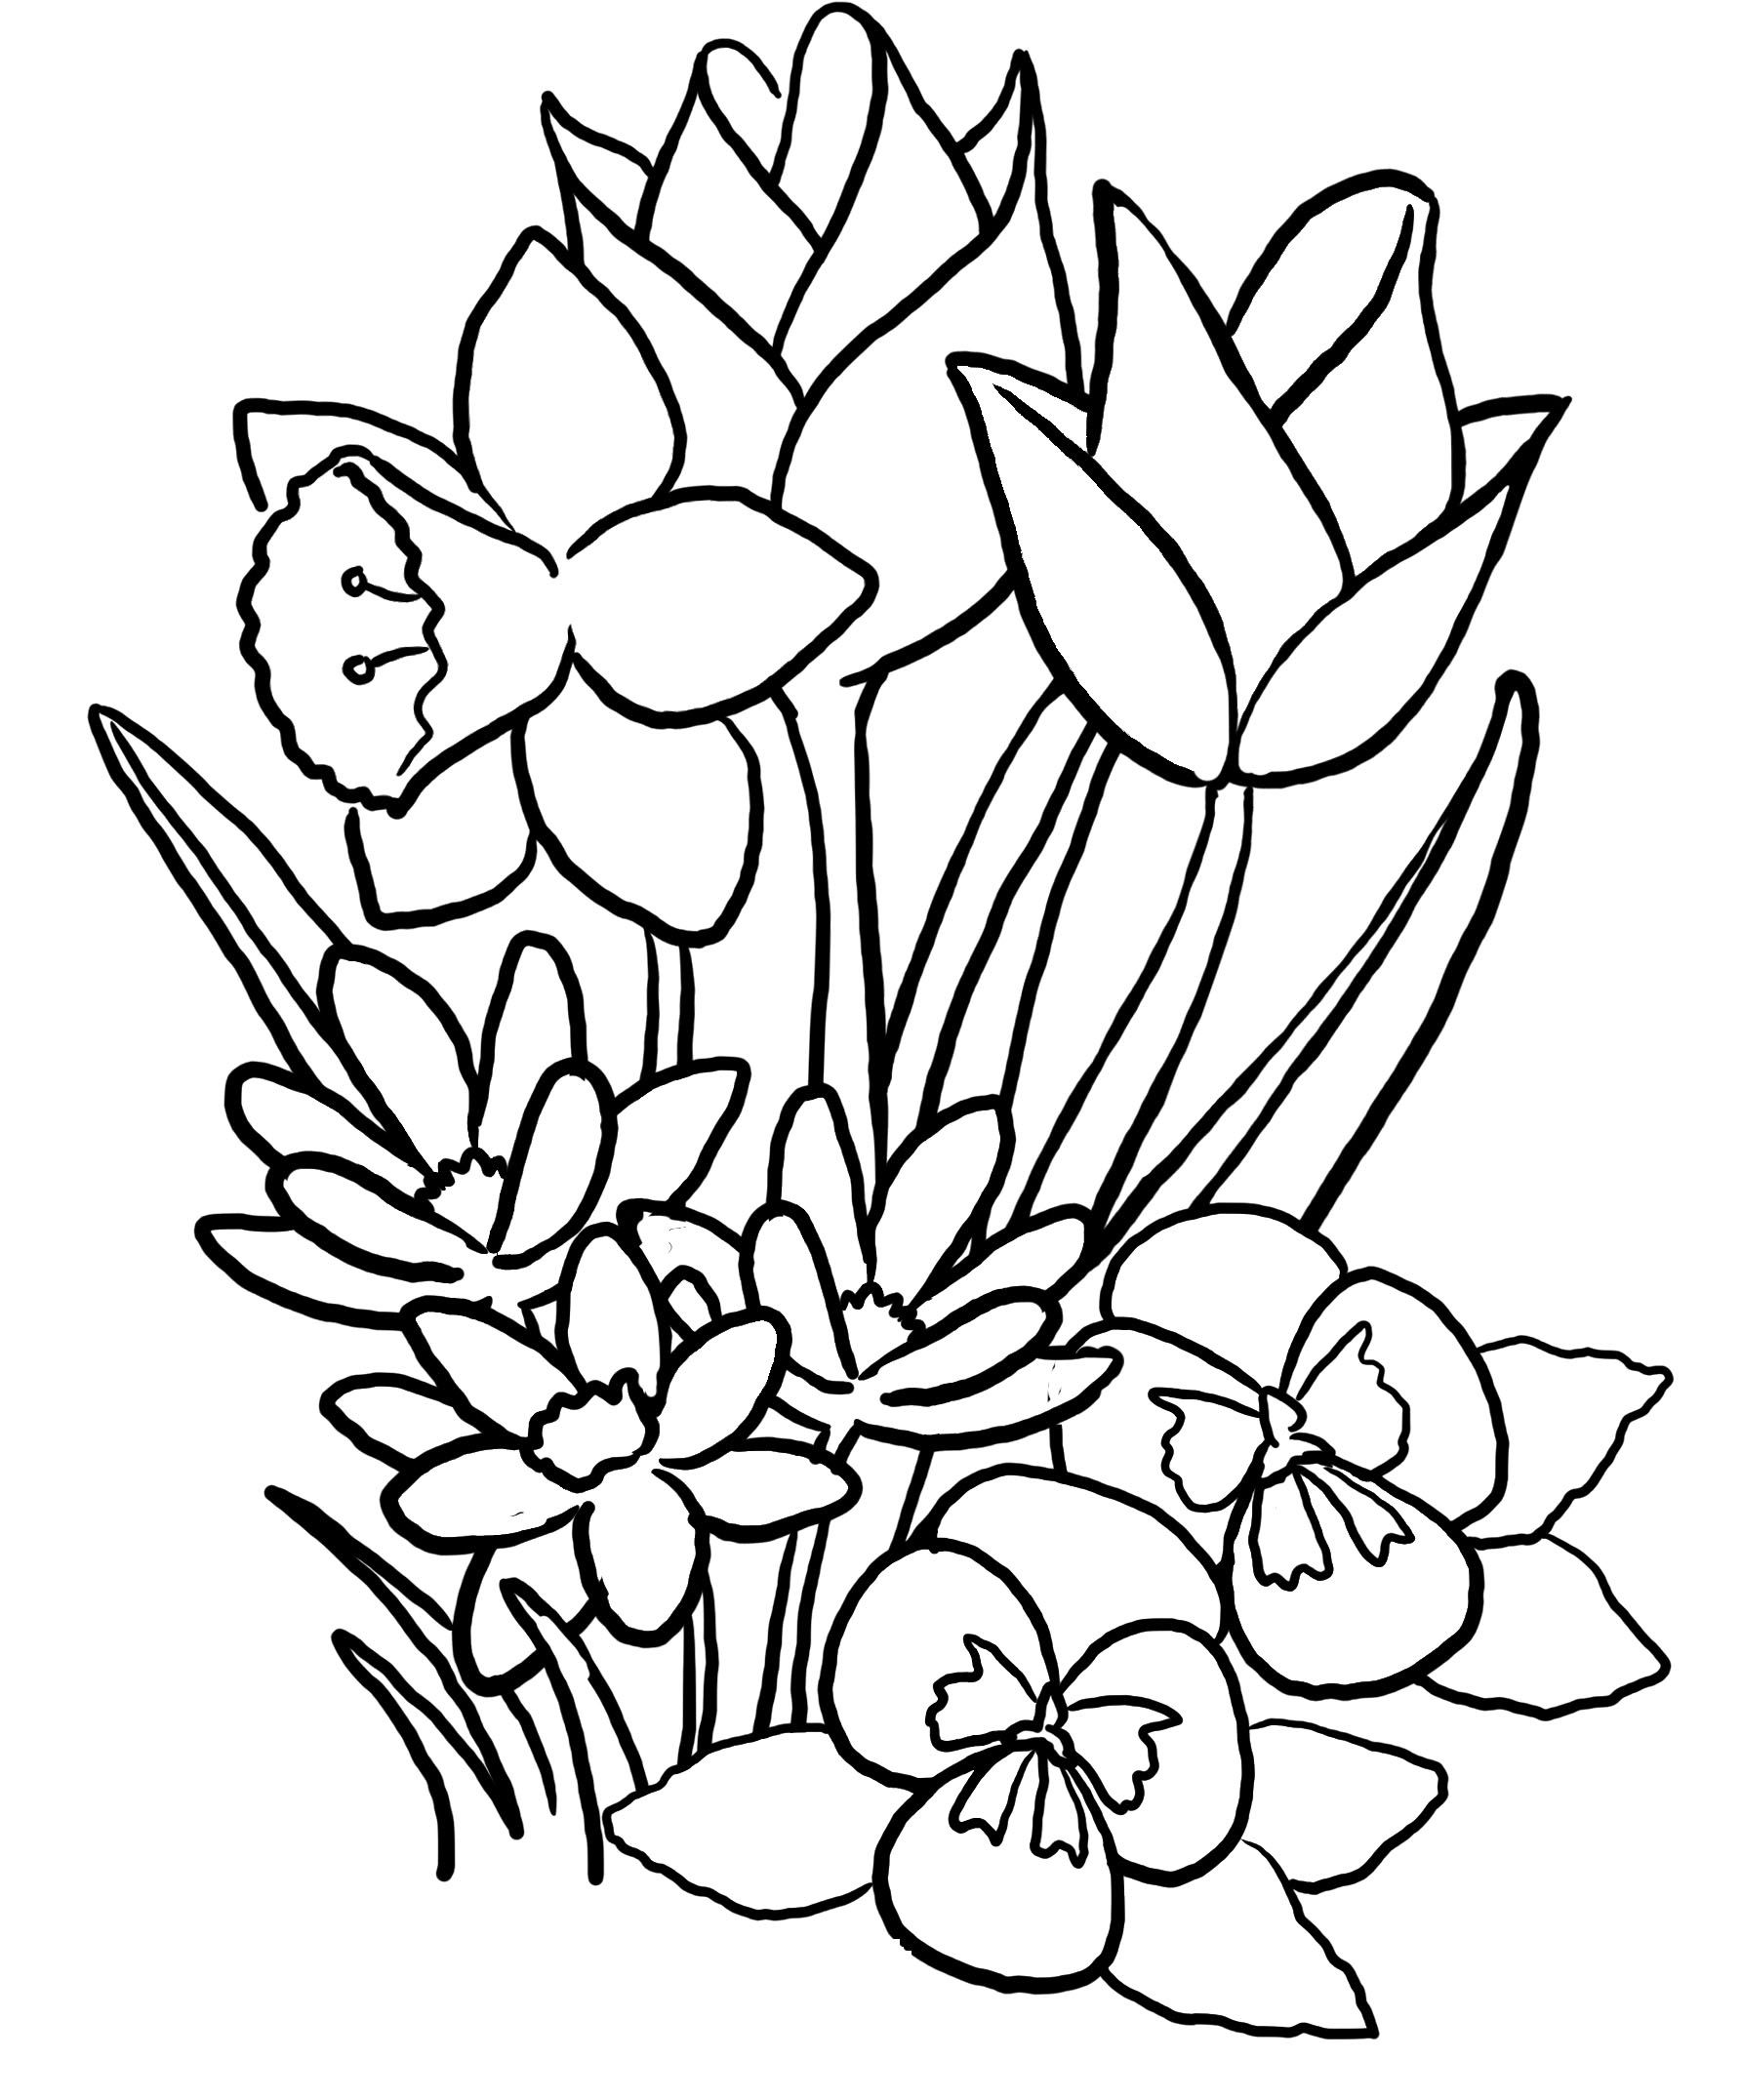 spring coloring pages spring flower flying high with jesus